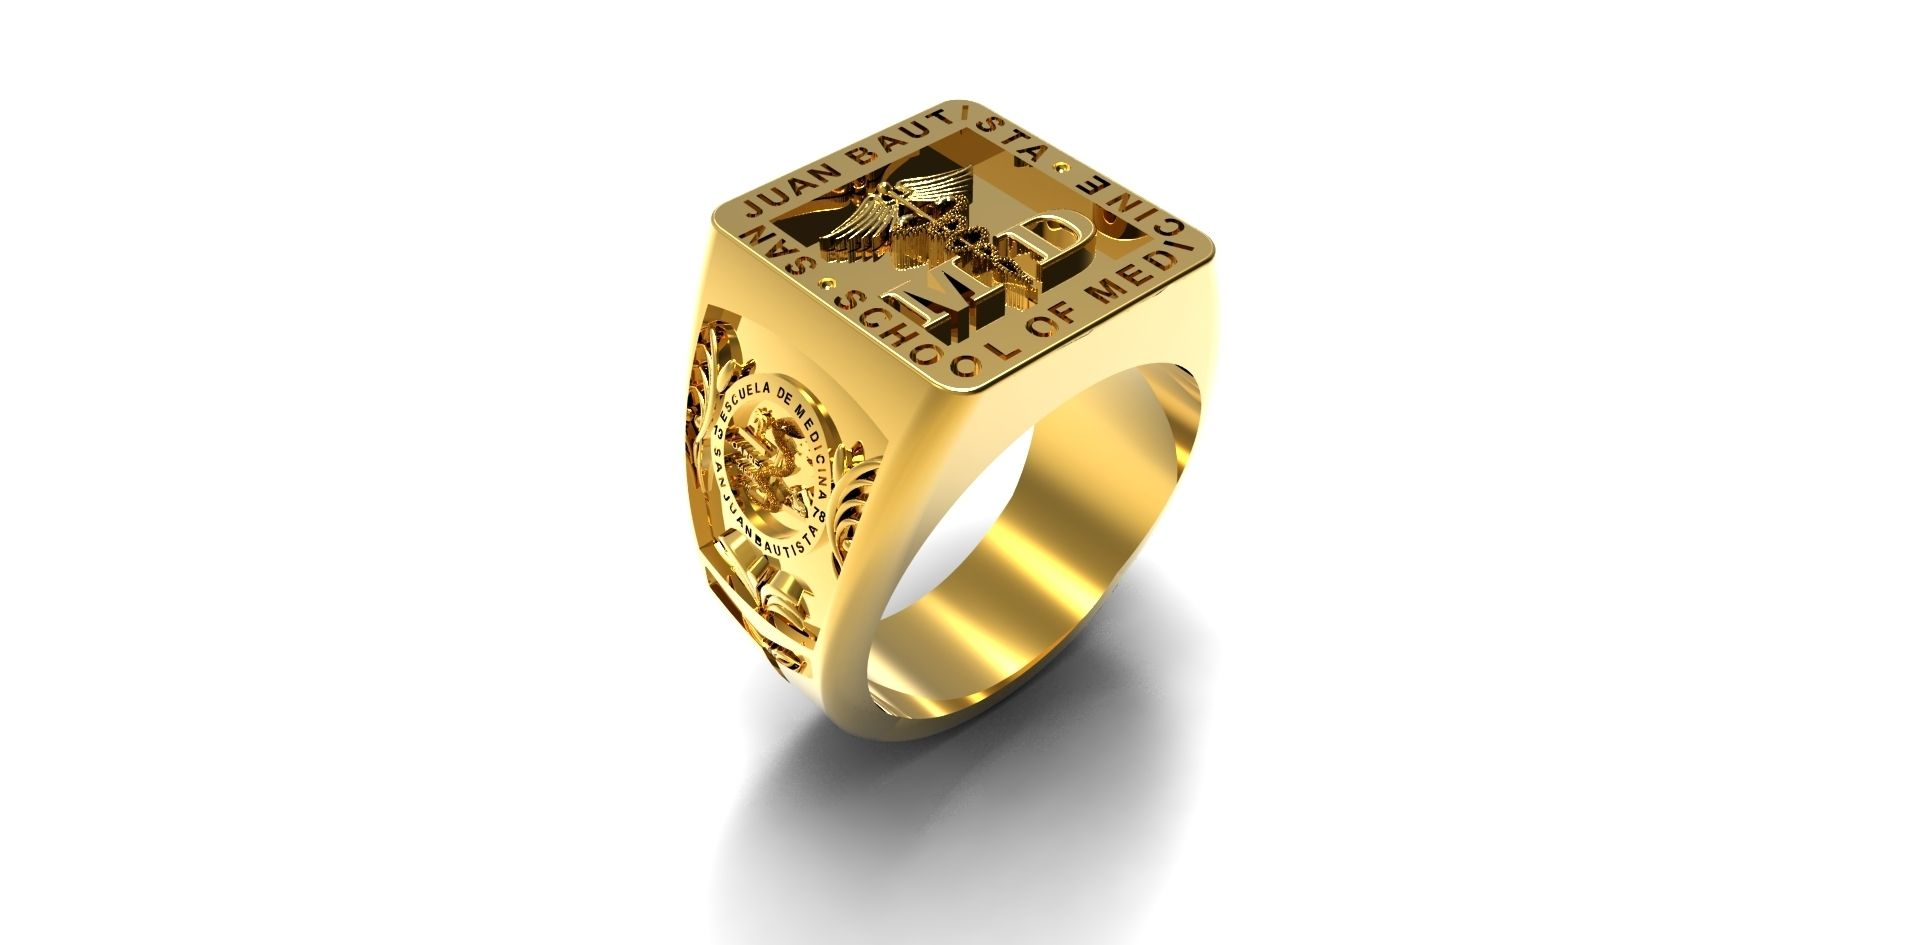 whitfield engraving products ring alysha custom rings